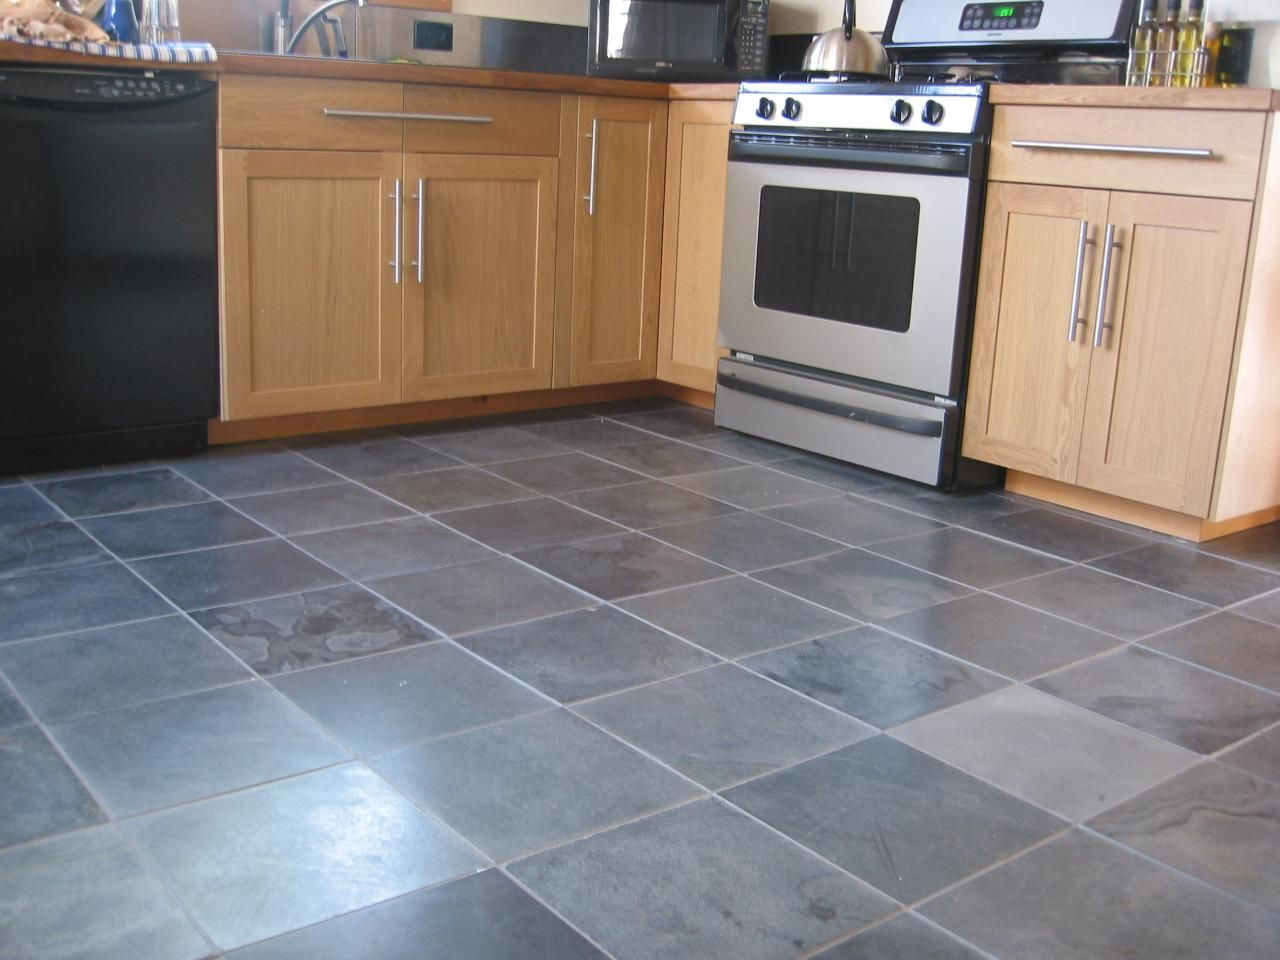 gray kitchen floor gray kitchen floor Slate Floor Tiles Kitchen Amazing Decoration Decorating Ideas This Gray tile flooring will be